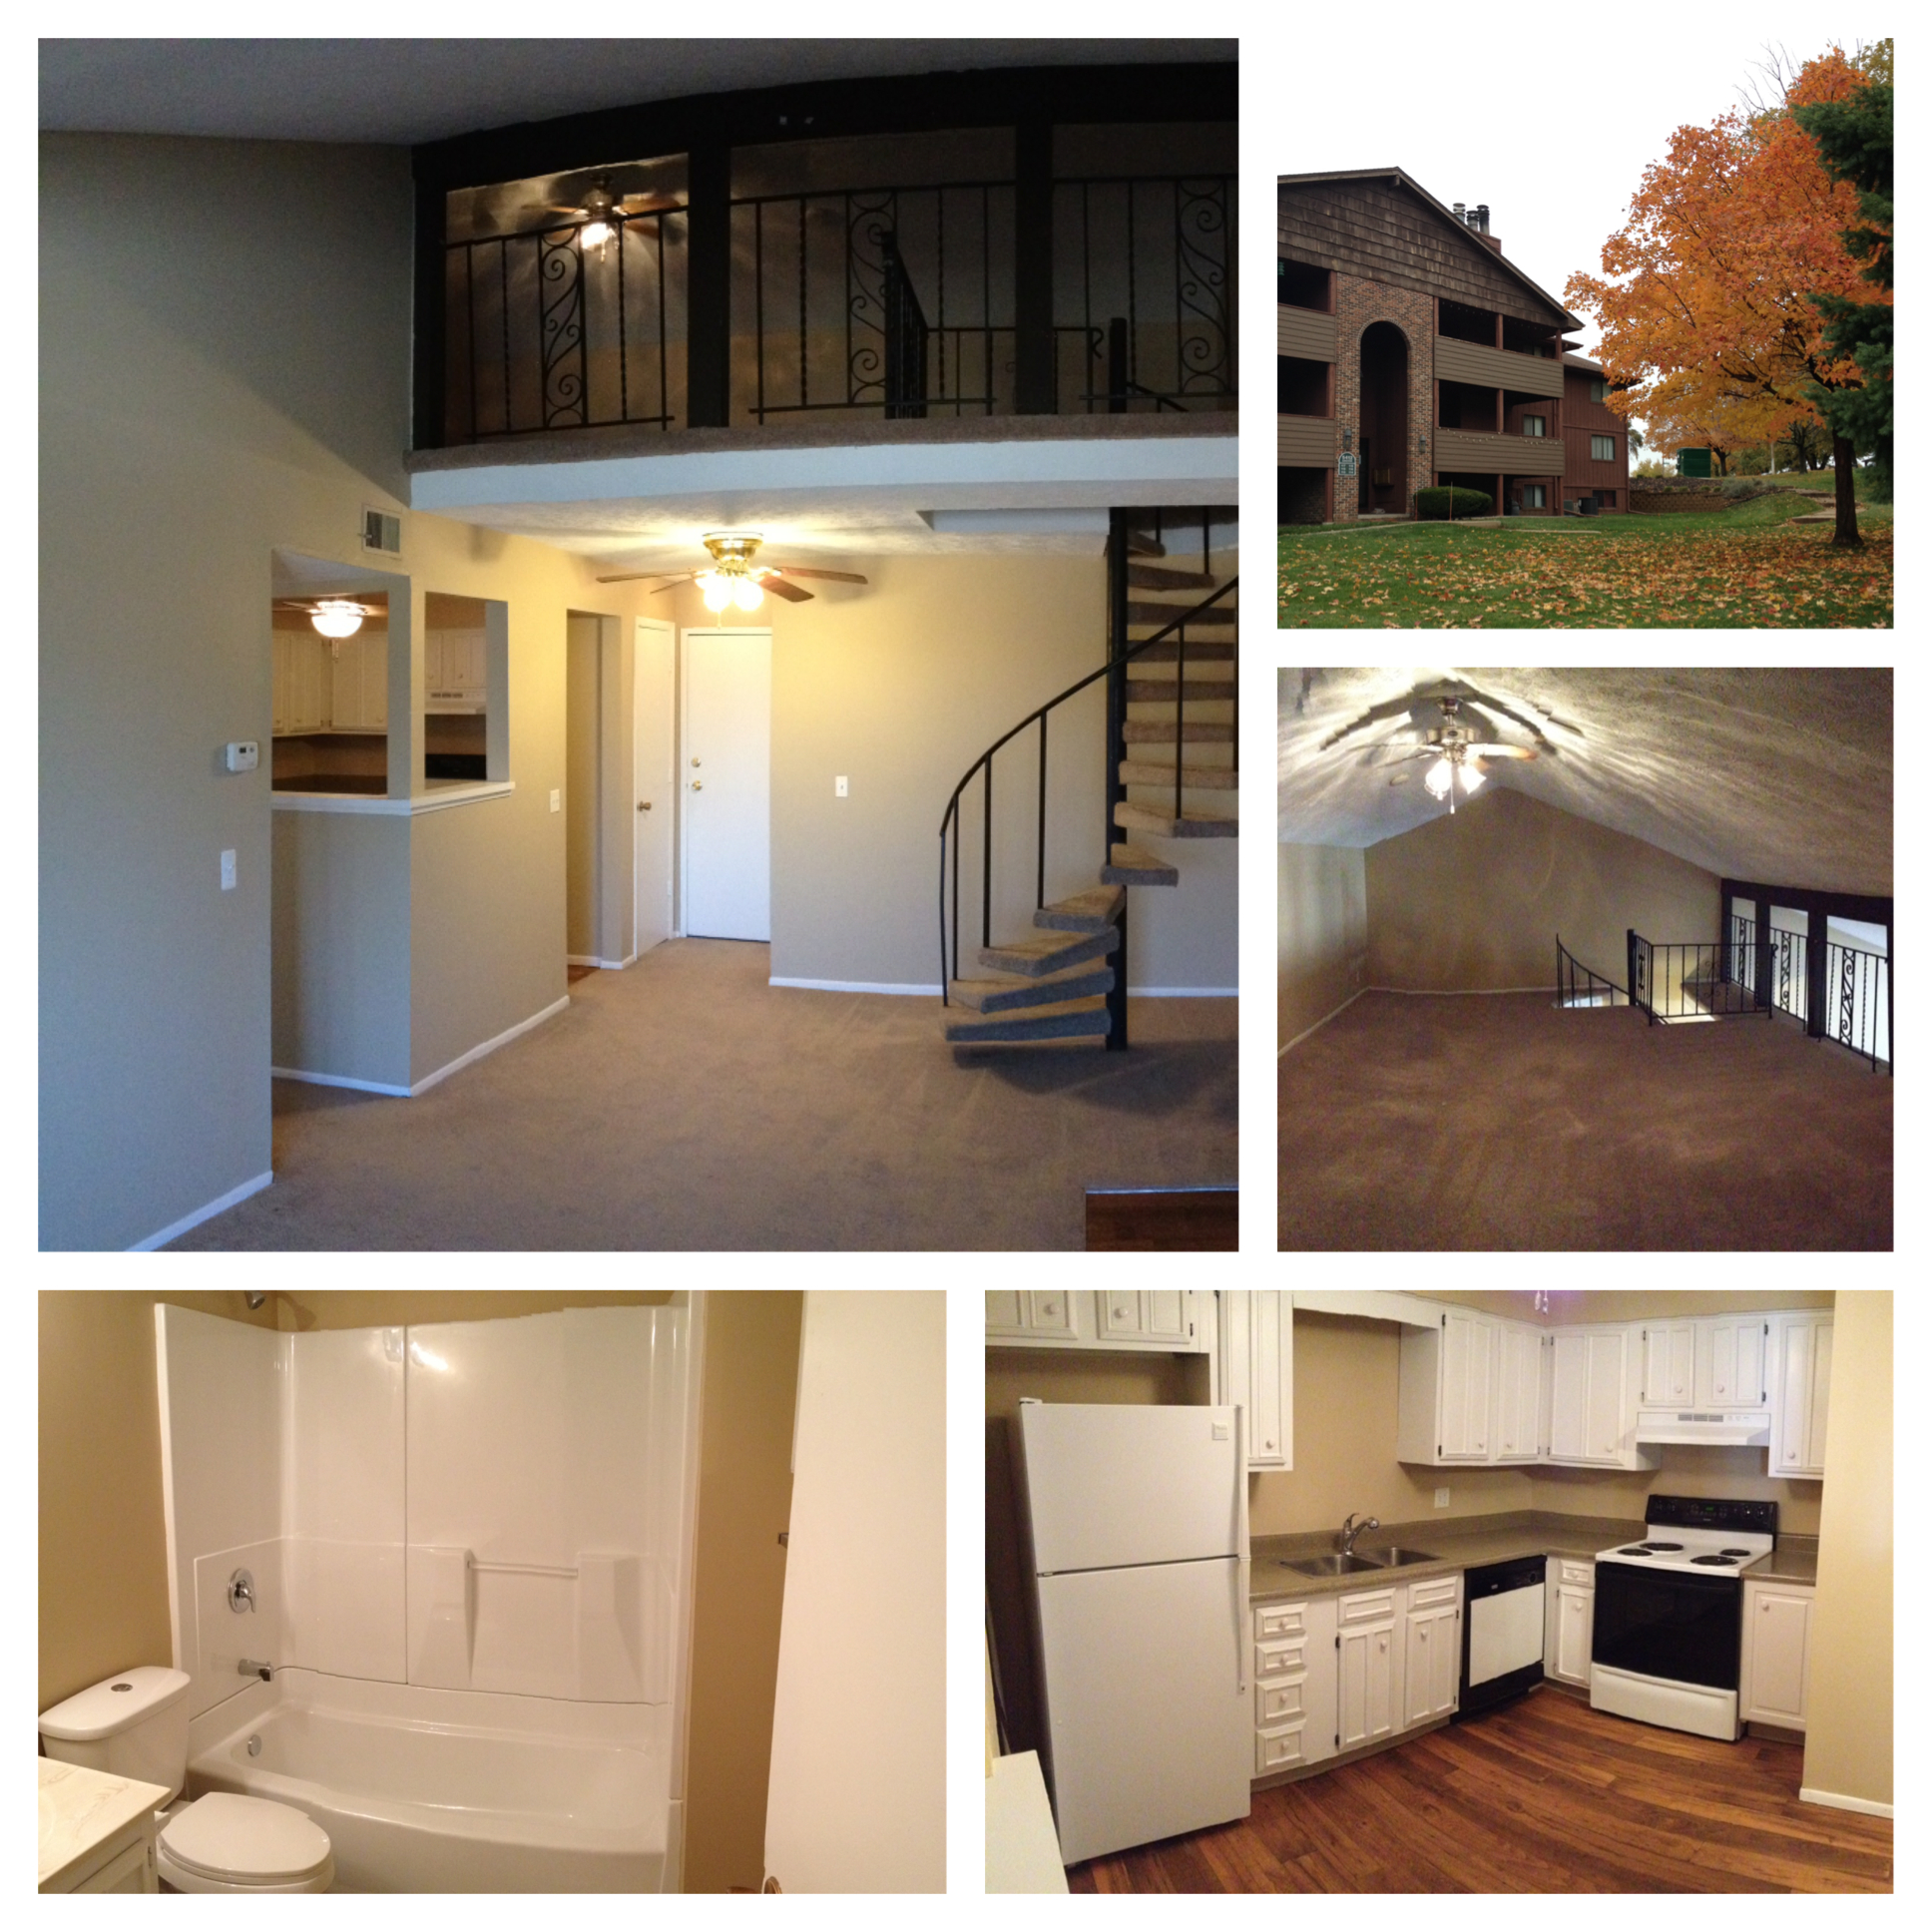 South Park Apartments Omaha: Living The Life In These Loft Apartments